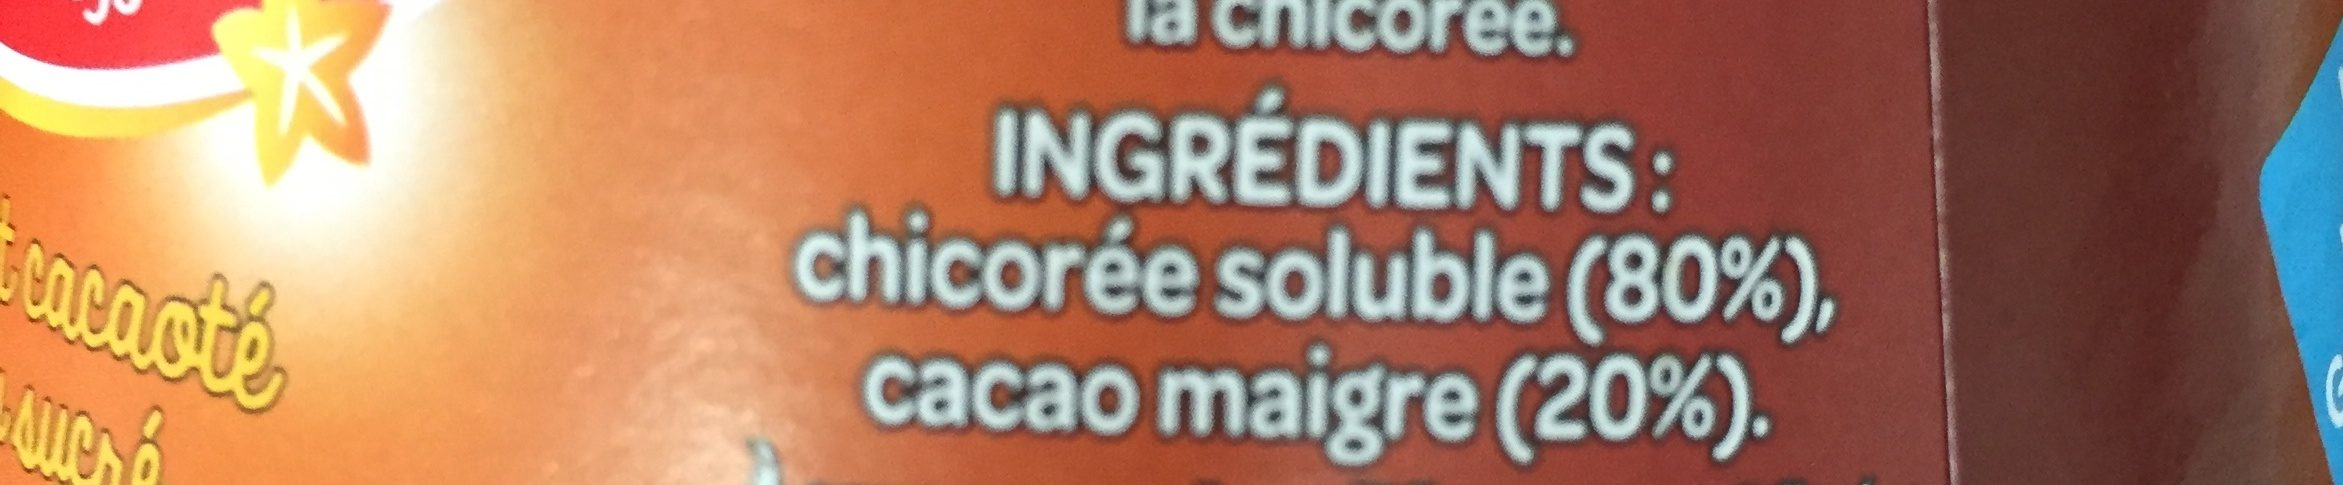 Chicoree soluble cacao 125g - Ingredients - fr